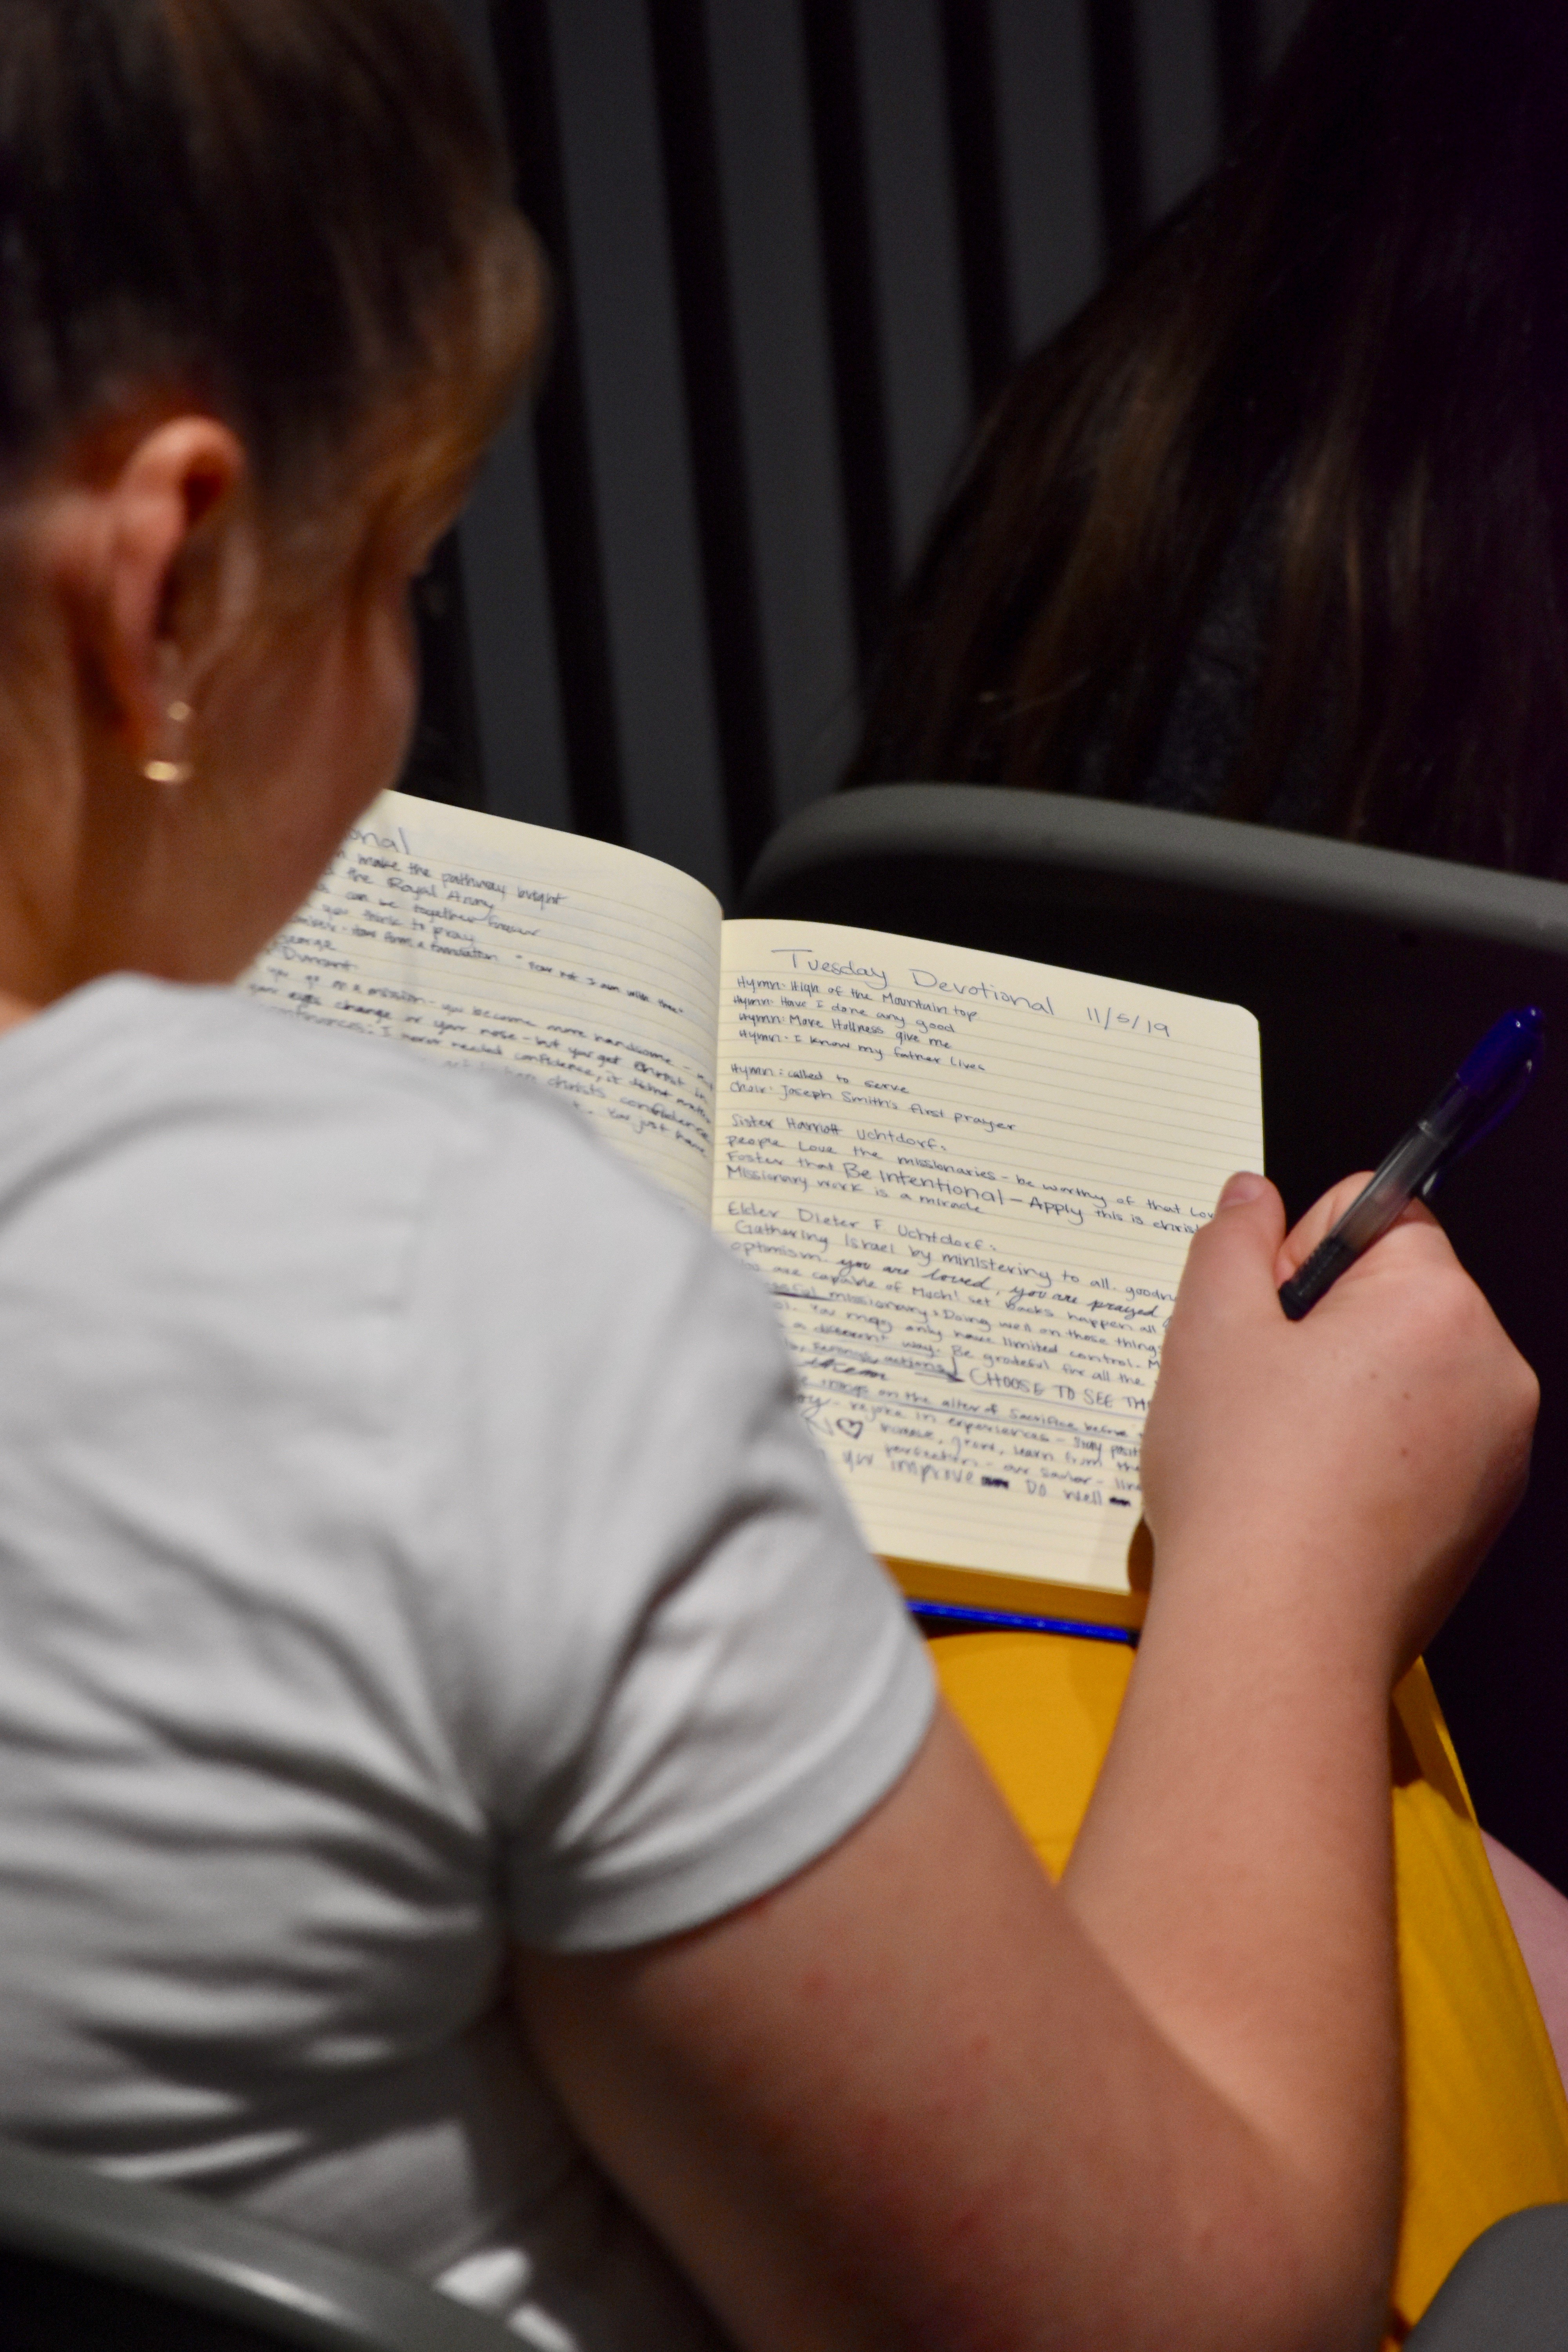 A sister missionary journals her notes during a Nov. 5, 2019, devotional with Elder Dieter F. Uchtdorf at the Provo Missionary Training Center.